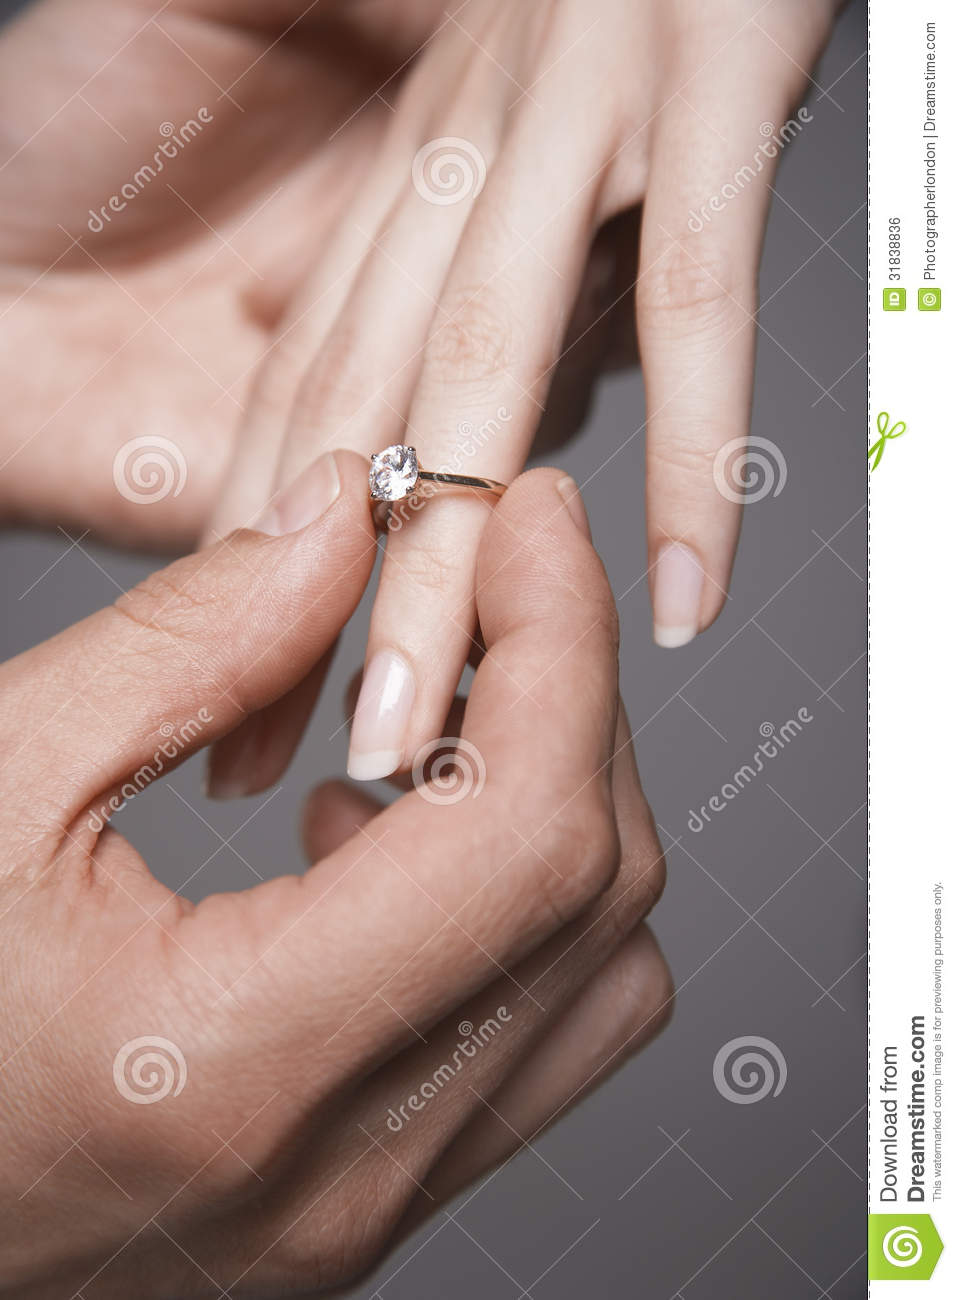 Man Placing Engagement Ring In Woman S Finger Stock Photo Image Of